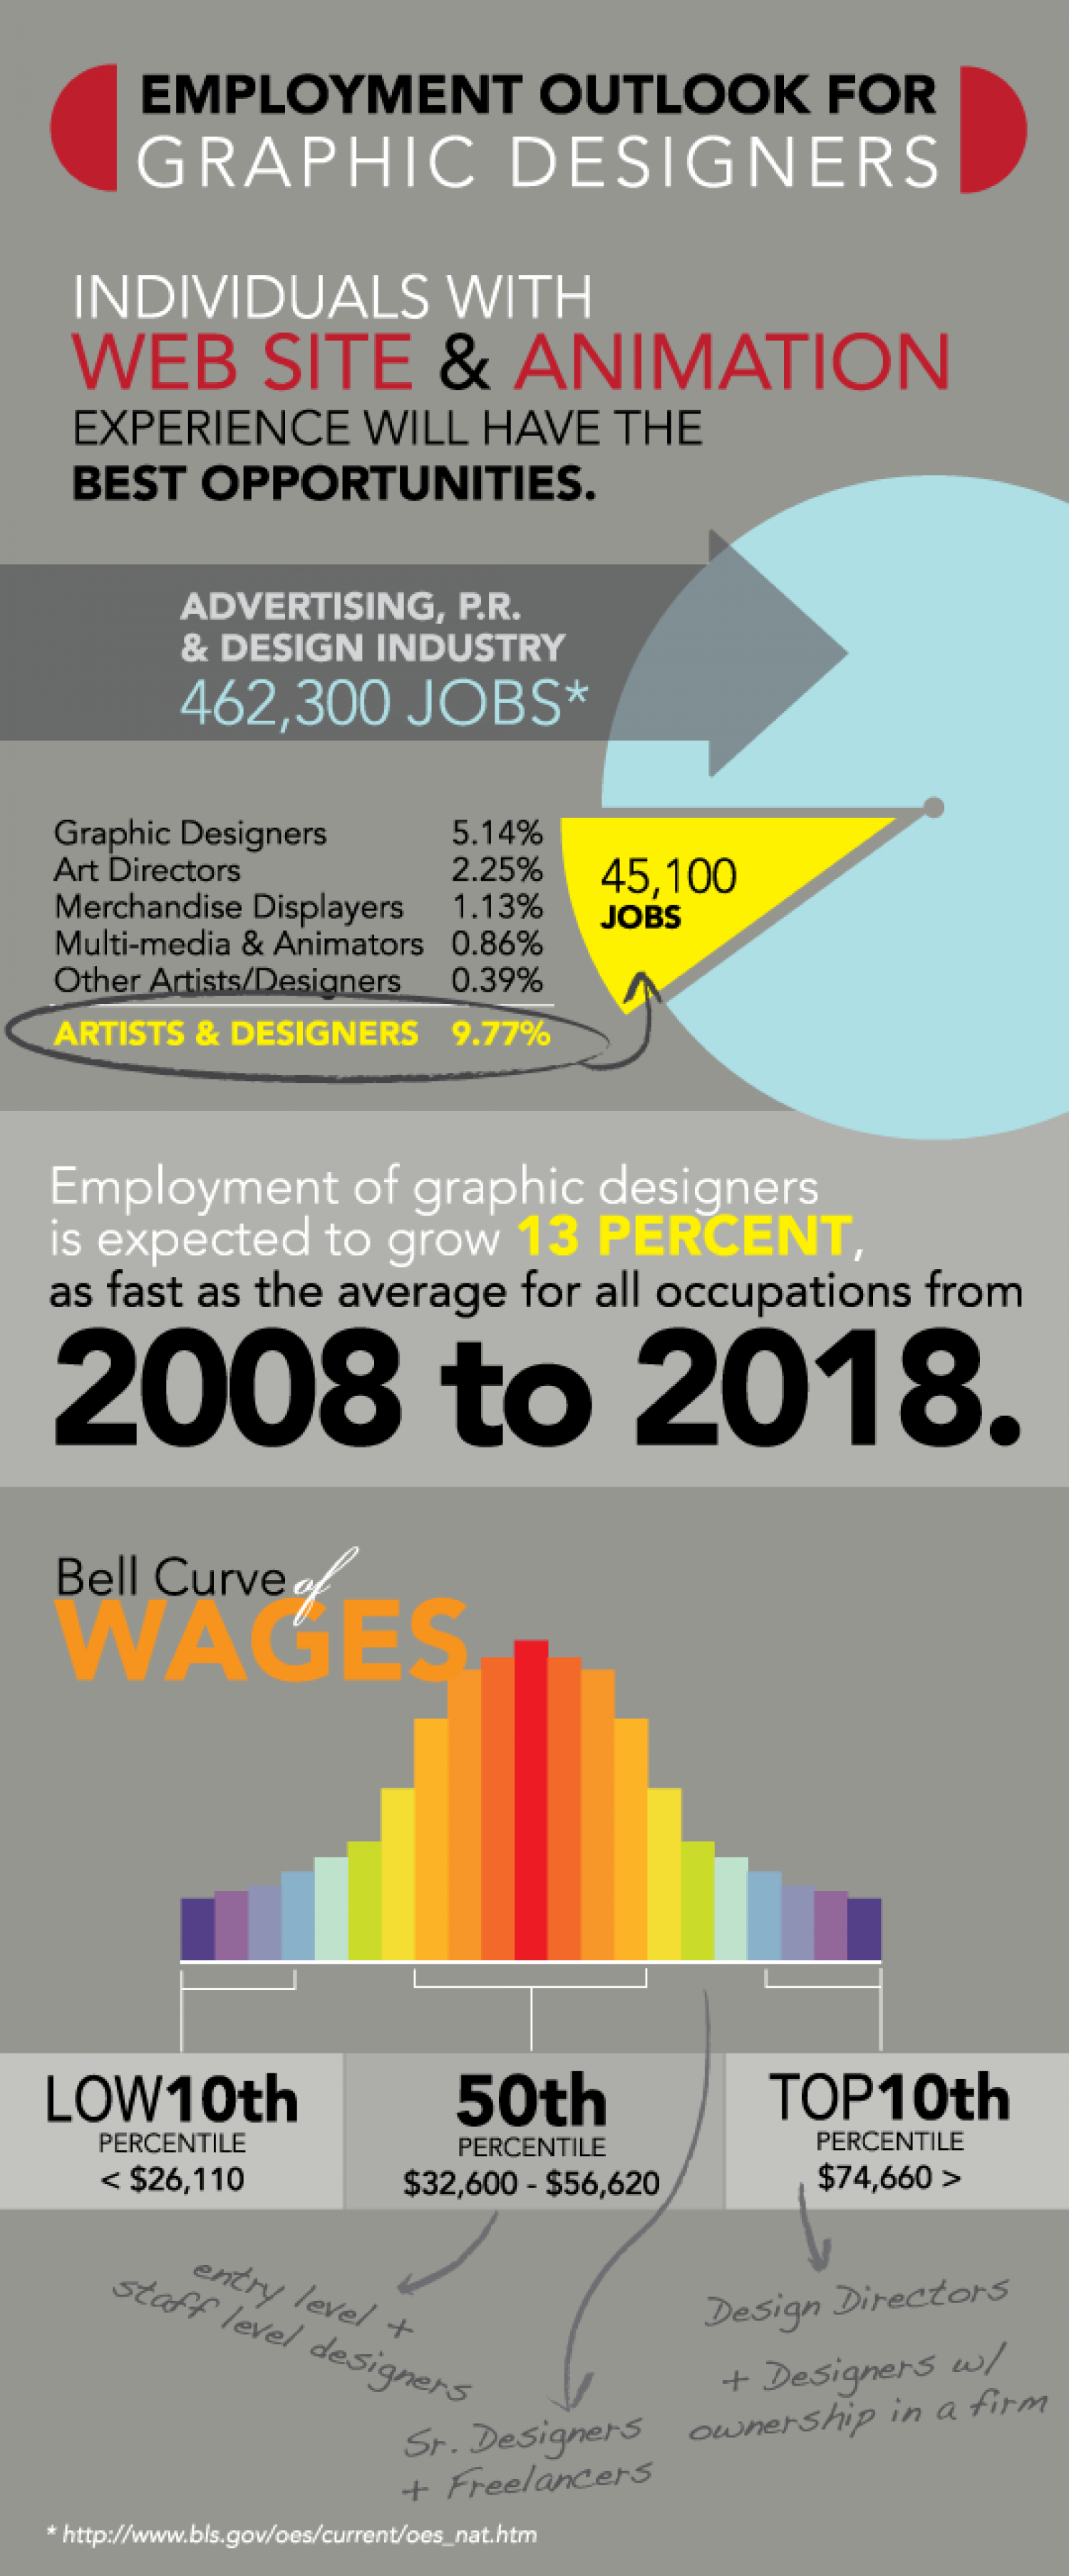 Graphic Design Jobs Outlook Infographic